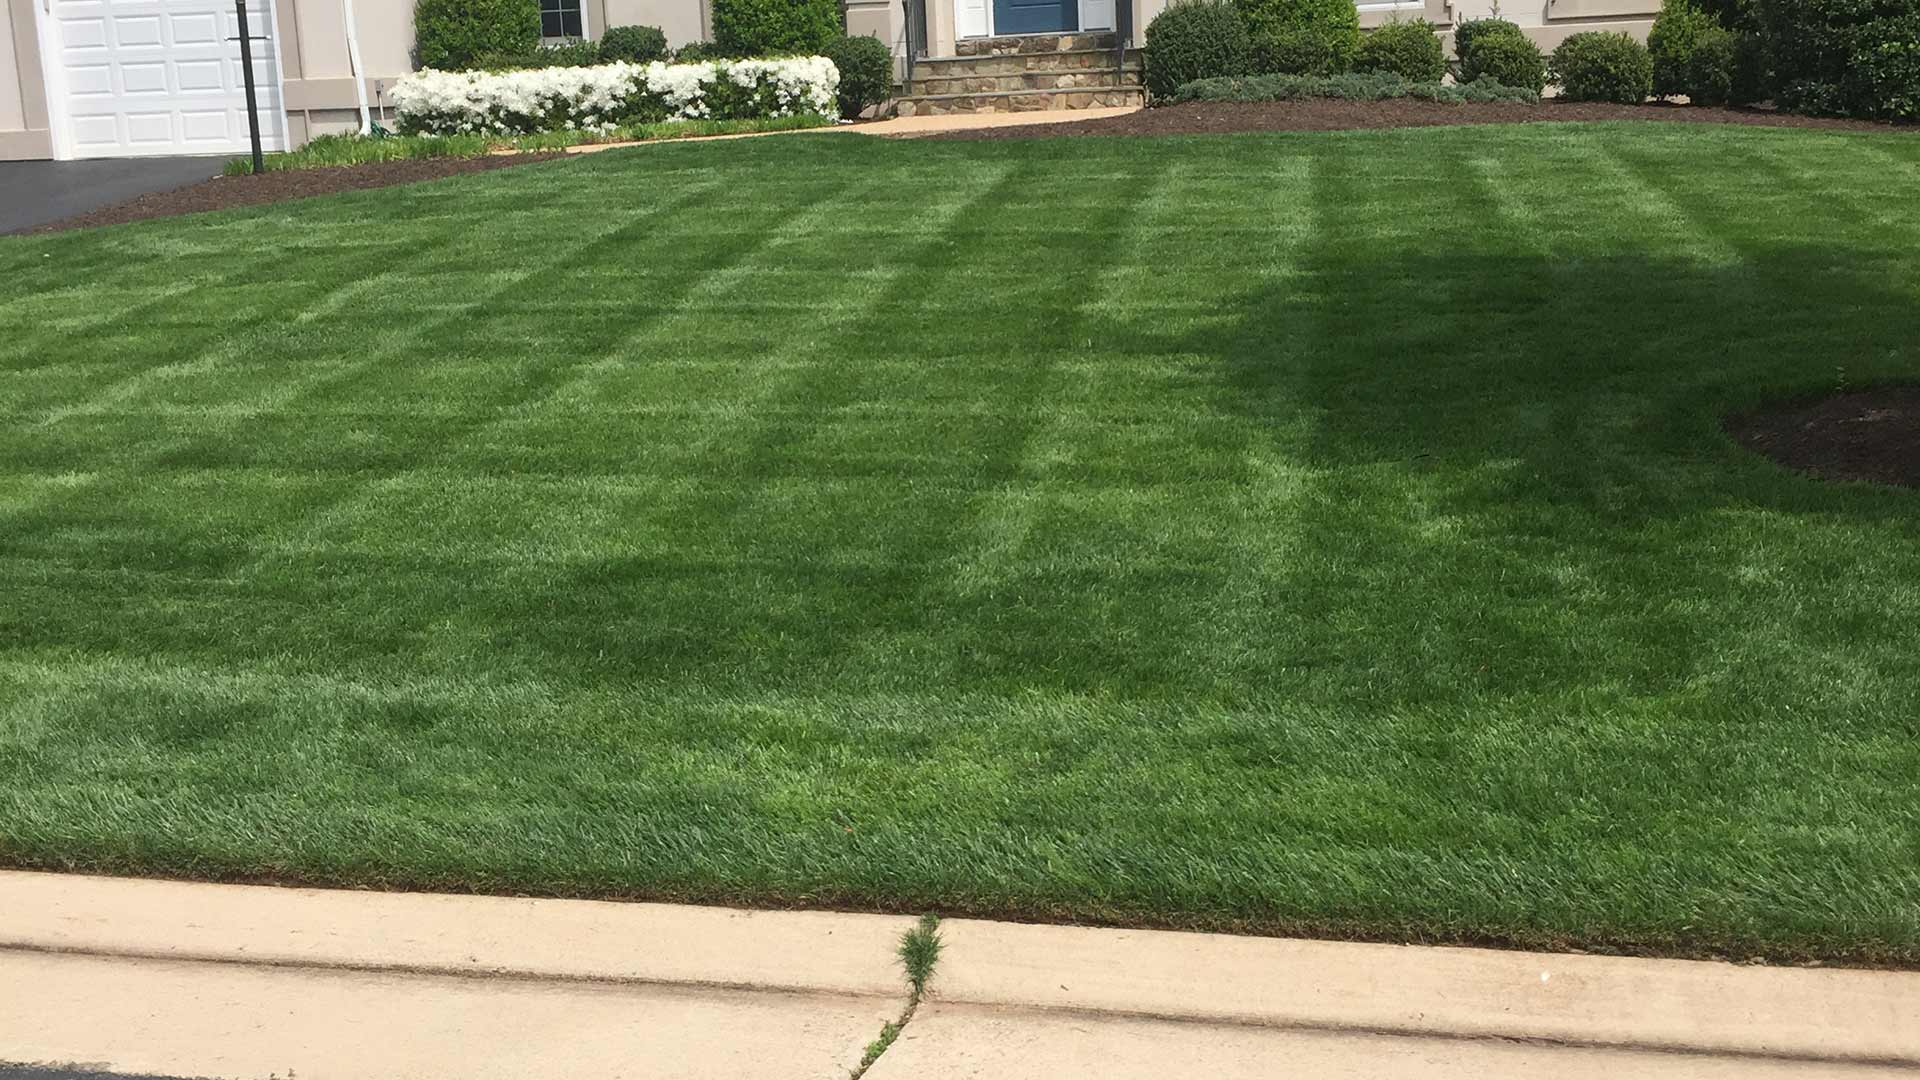 A well maintained home lawn in Warrenton, VA.